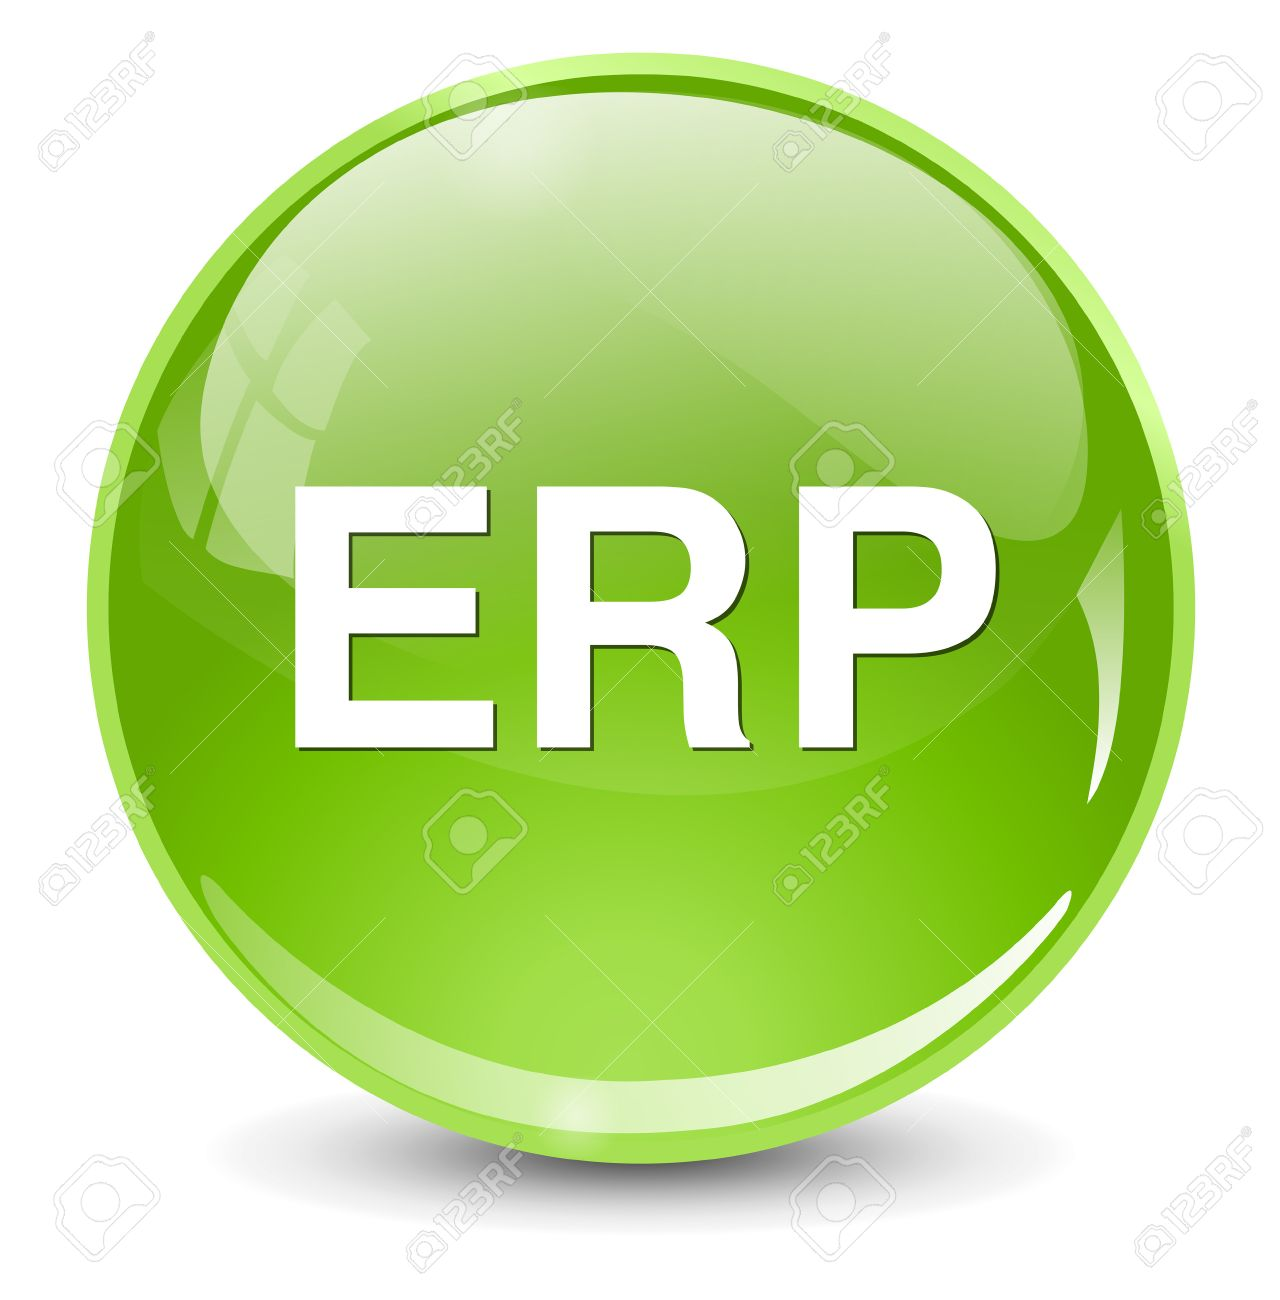 erp icon royalty free cliparts vectors and stock illustration